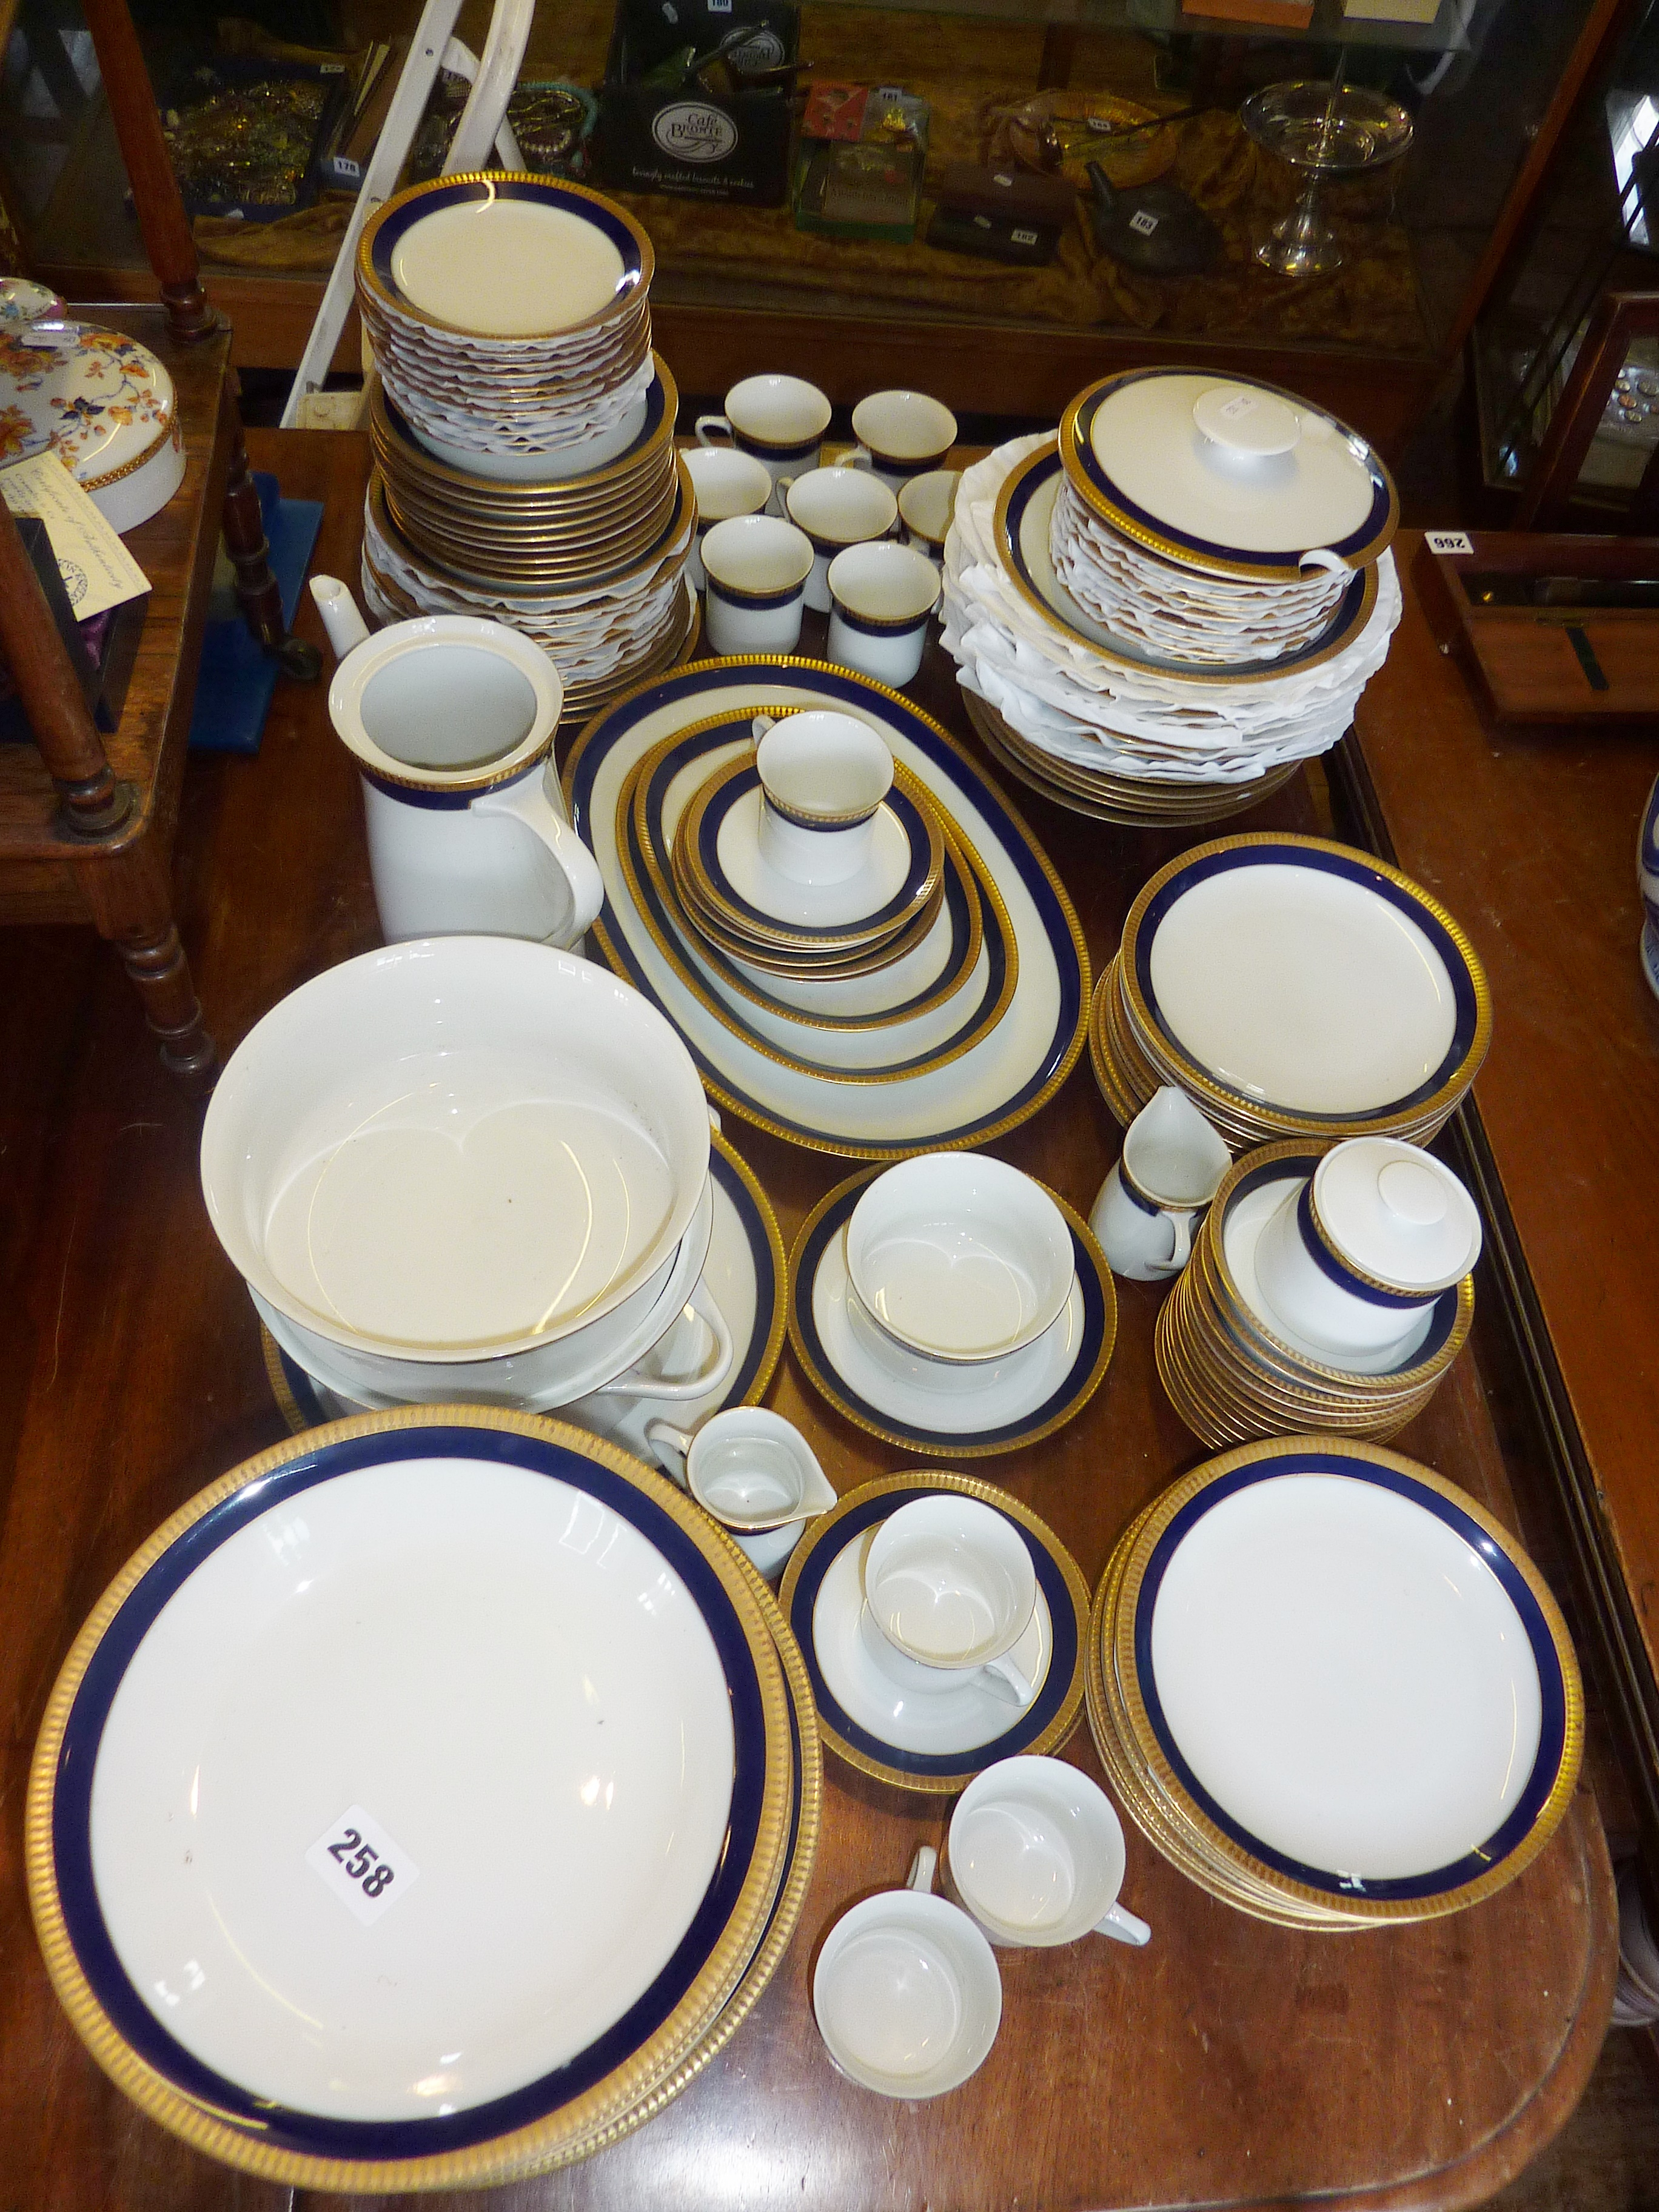 Lot 258 - Extensive Thomas of Germany Dinner and Coffee Service, in white with blue and gold border